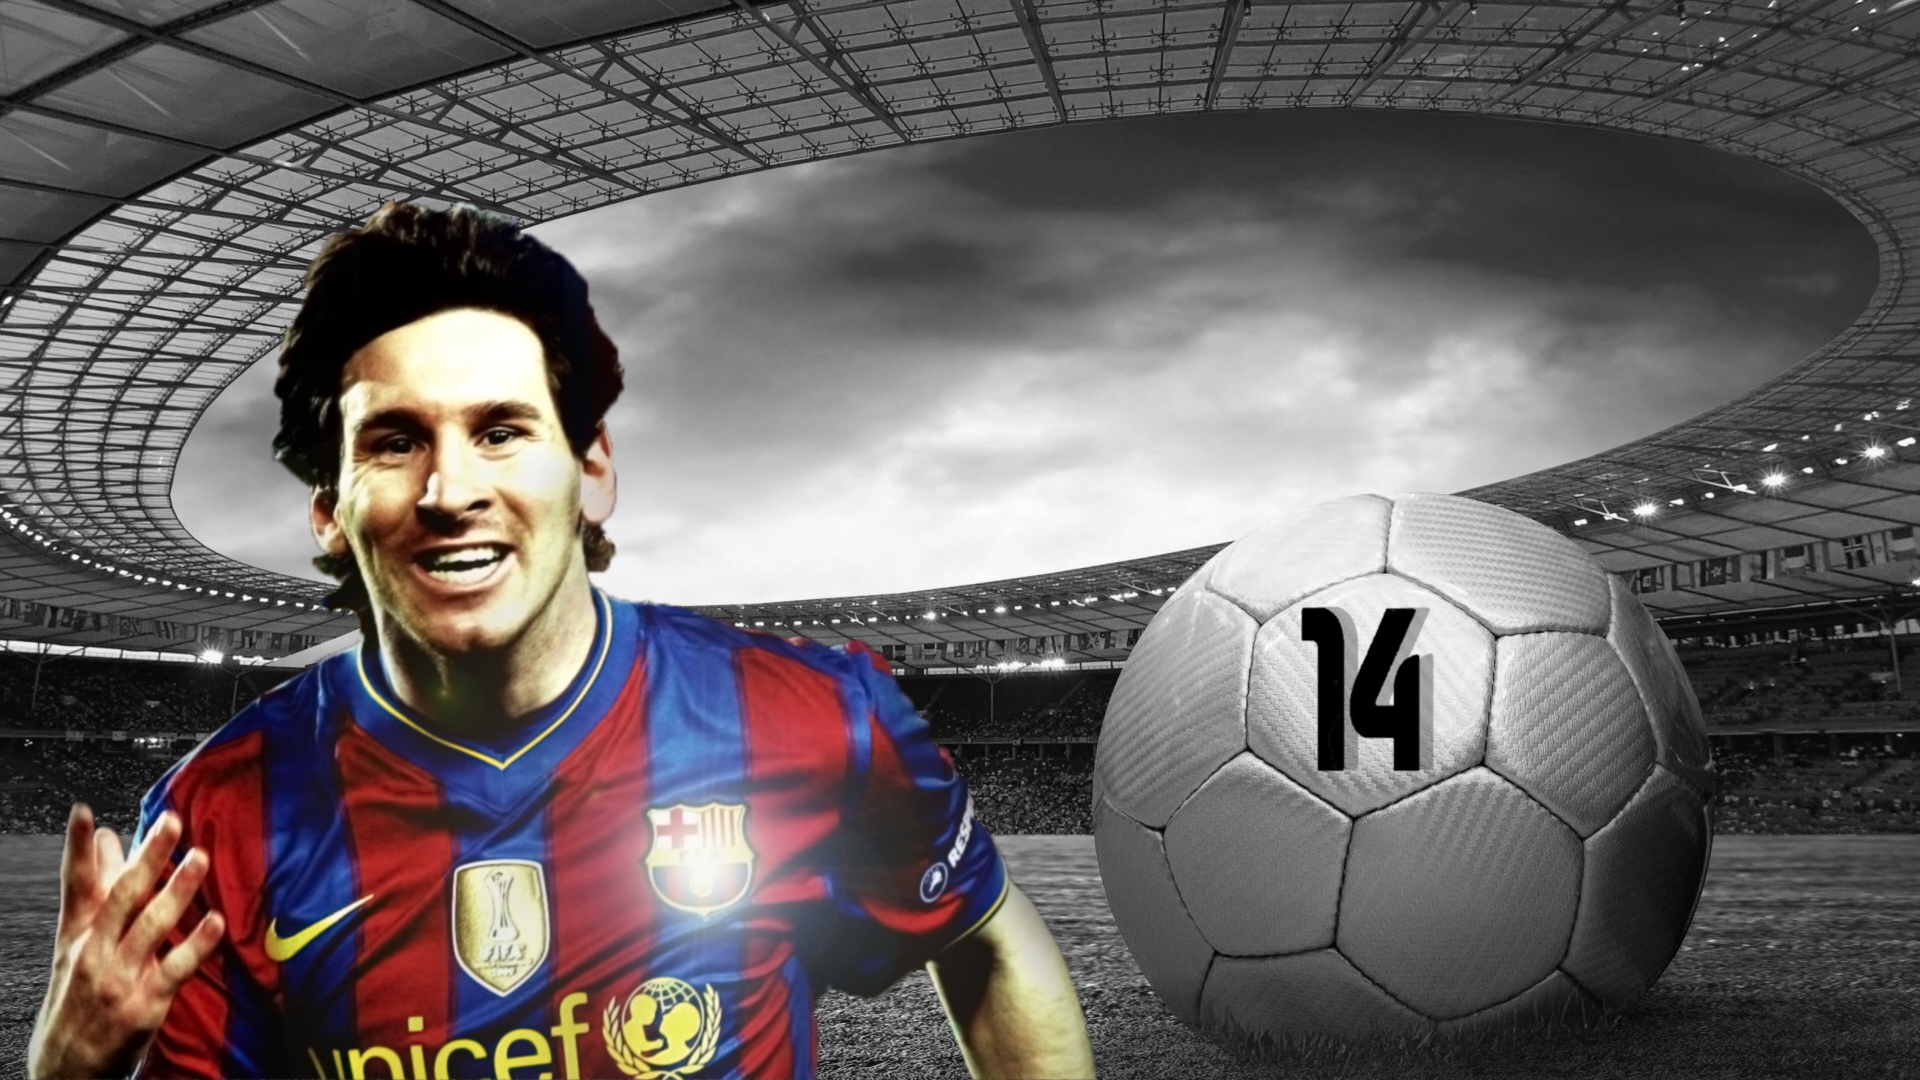 Fifa 14 Hd Wallpapers Download Stunning Hd Wallpapers